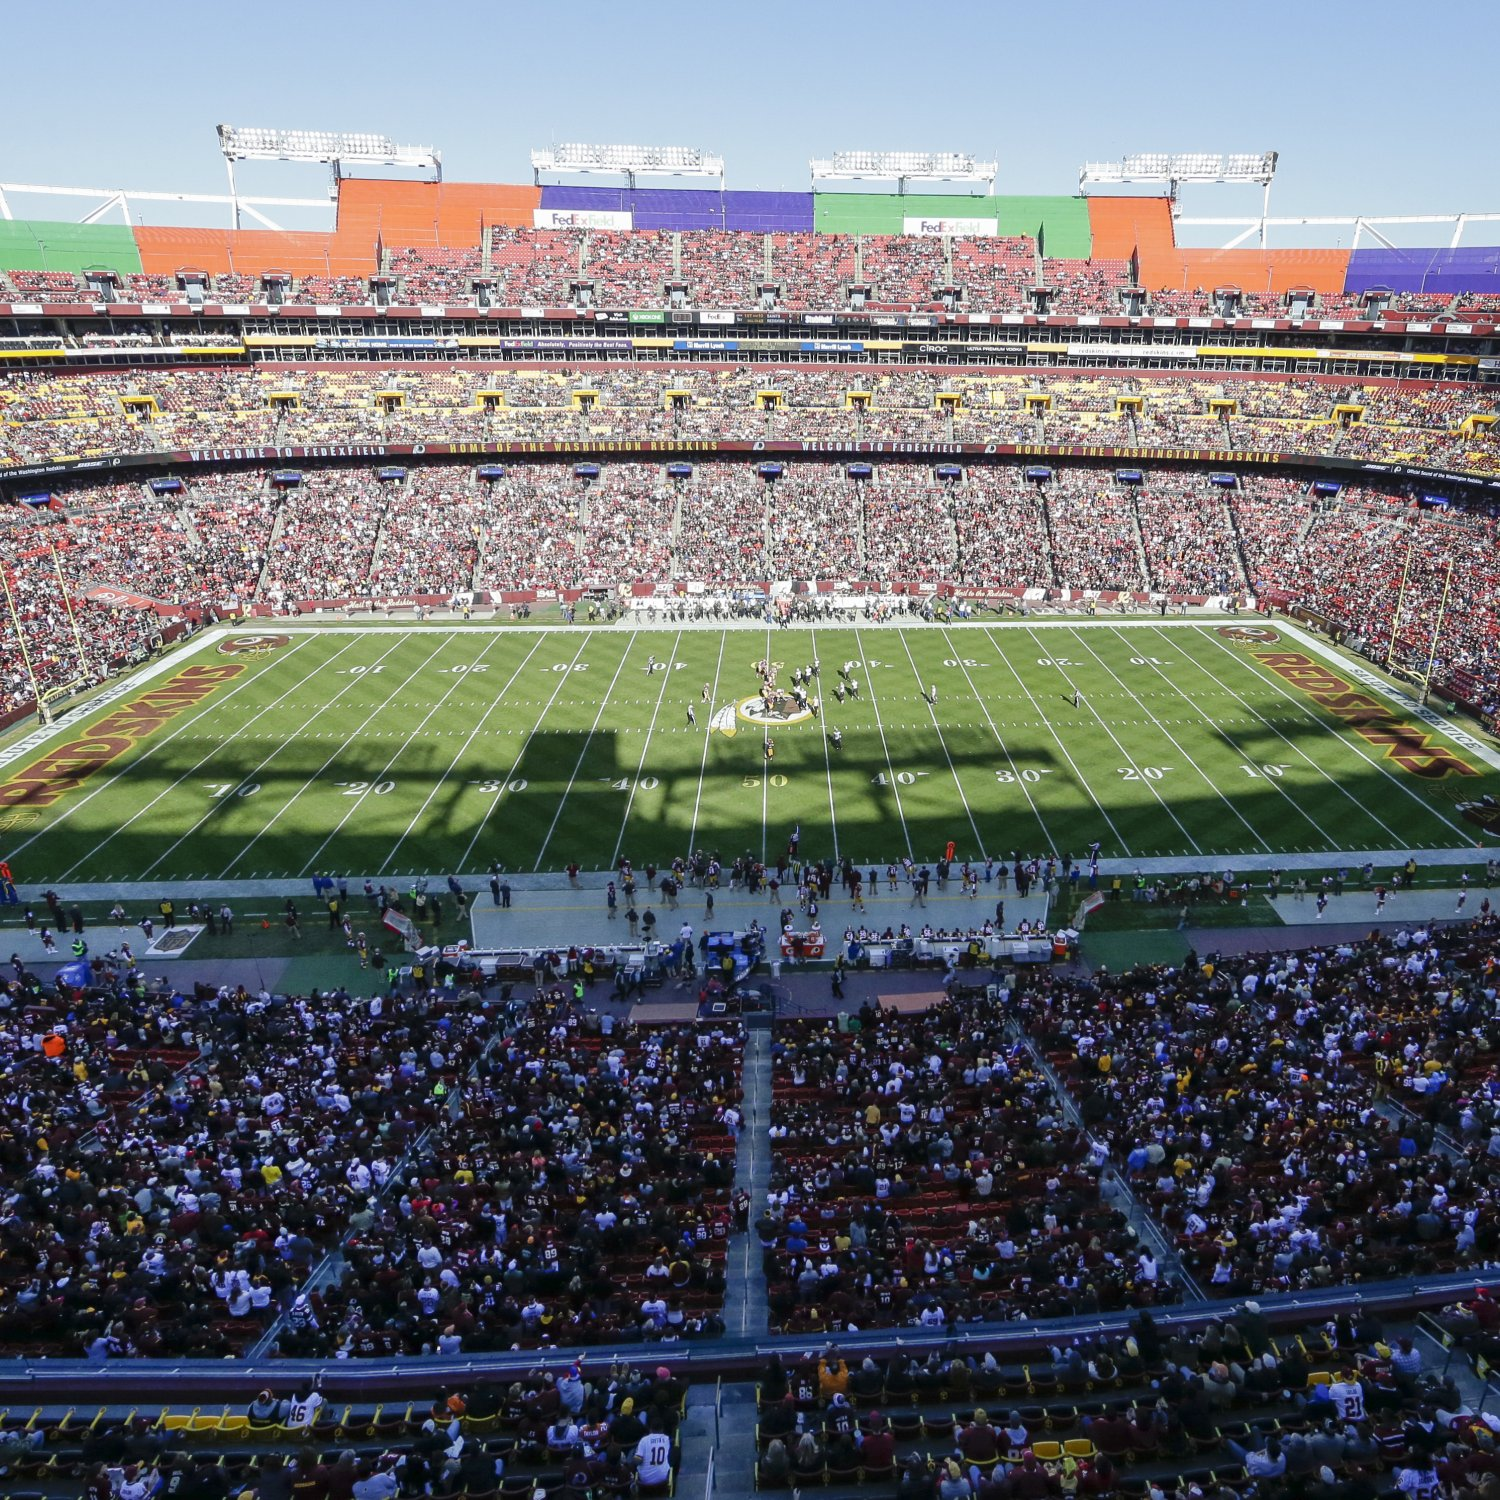 Redskins New Stadium: Washington Redskins New Stadium: News, Rumors, Speculation